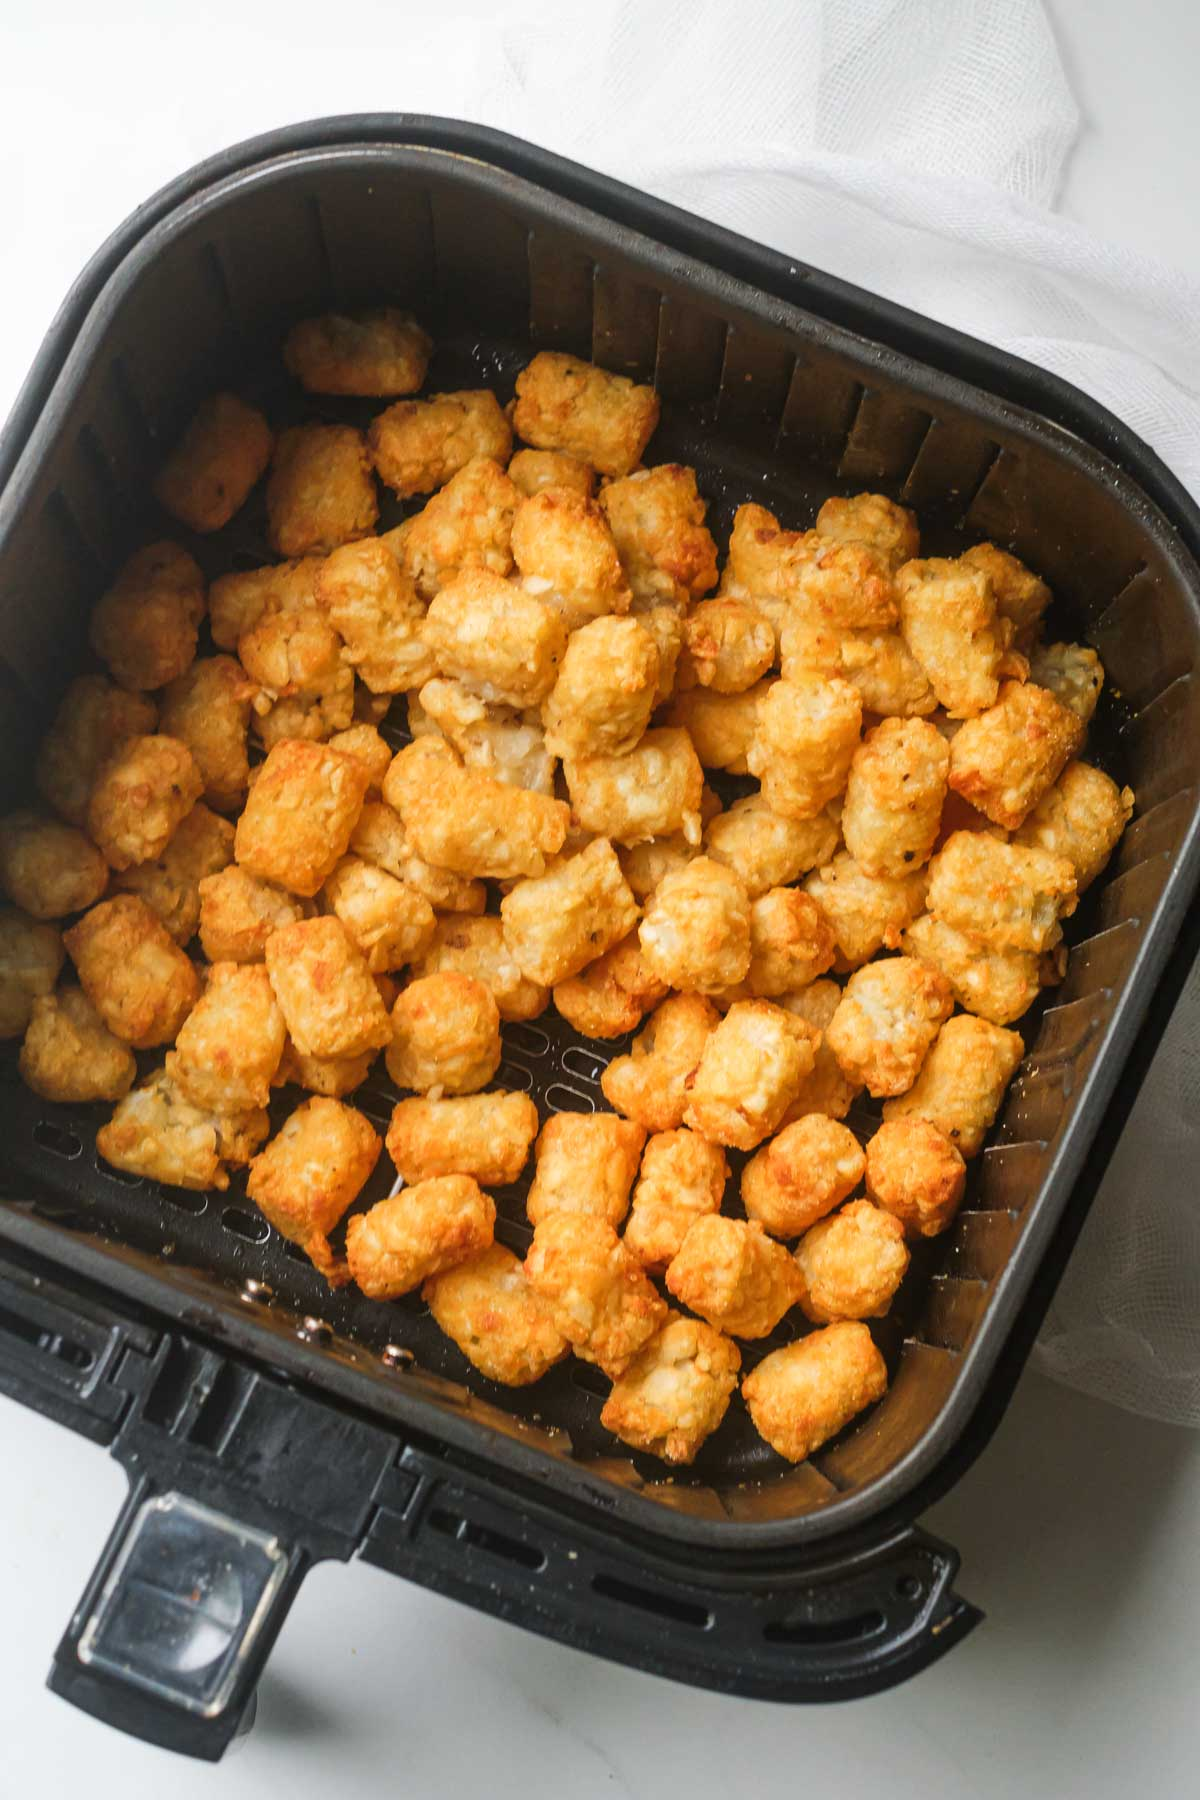 top down view of the cooked air fryer frozen tater tots inside the air fryer basket